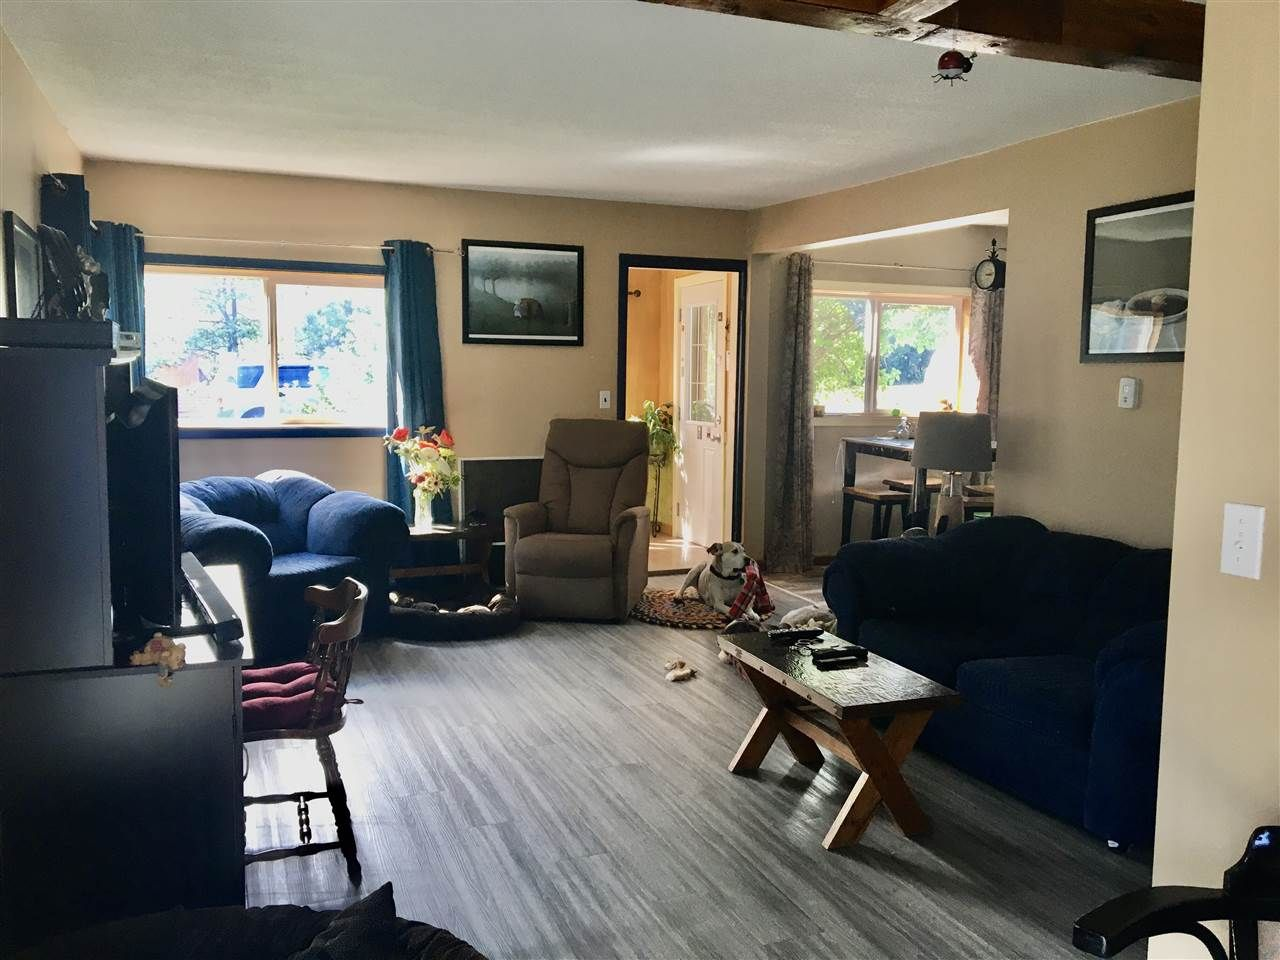 Photo 8: Photos: 230 BAKER Drive in Quesnel: Quesnel - Town House for sale (Quesnel (Zone 28))  : MLS®# R2481471